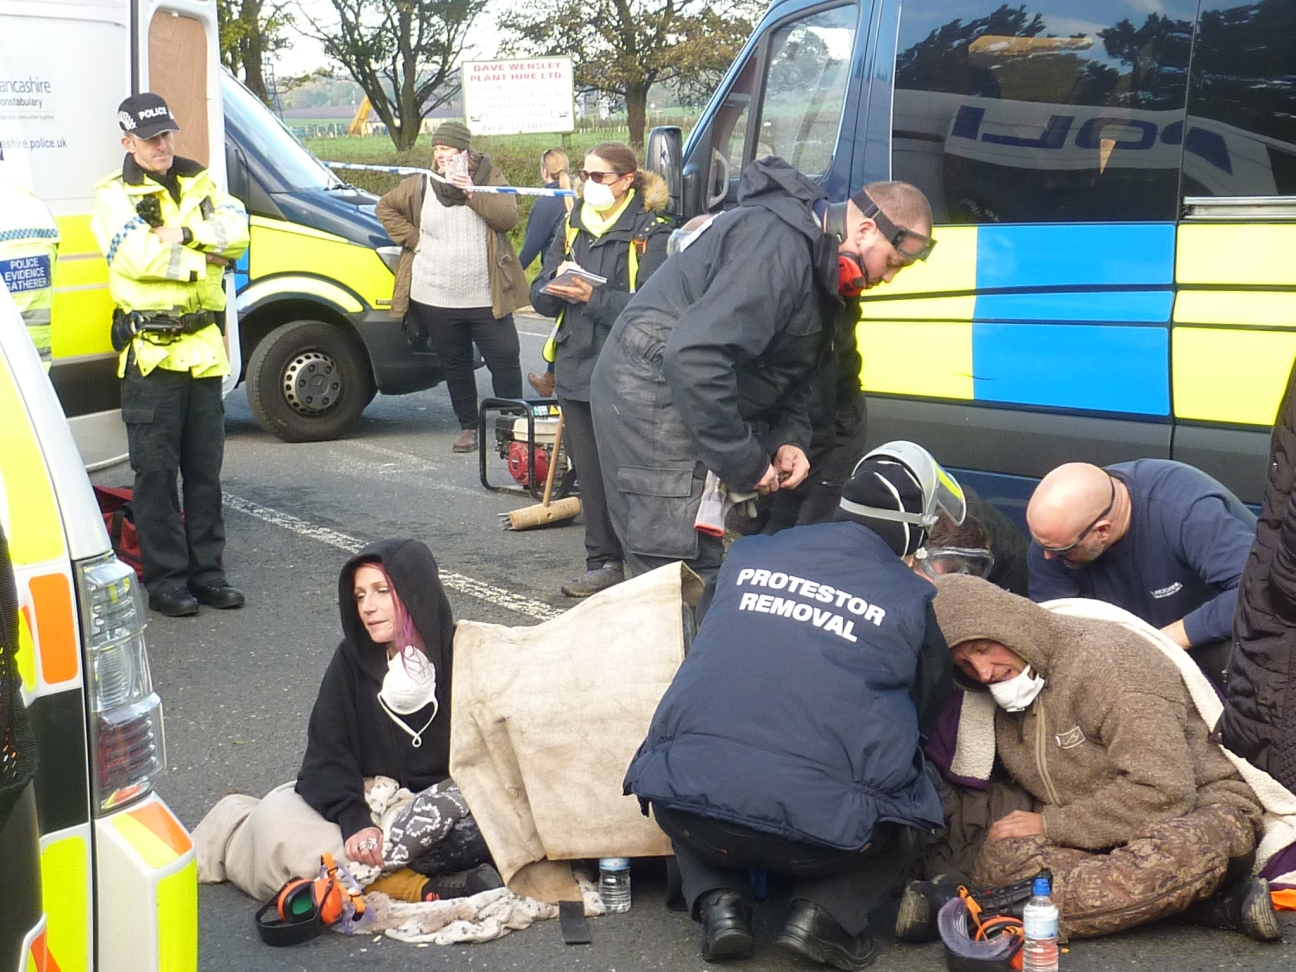 Police protester removal team working to release two campaigners who locked together outside the farm run the owner of Cuadrilla's shale gas site, 15 October 2018. Photo: DrillOrDrop